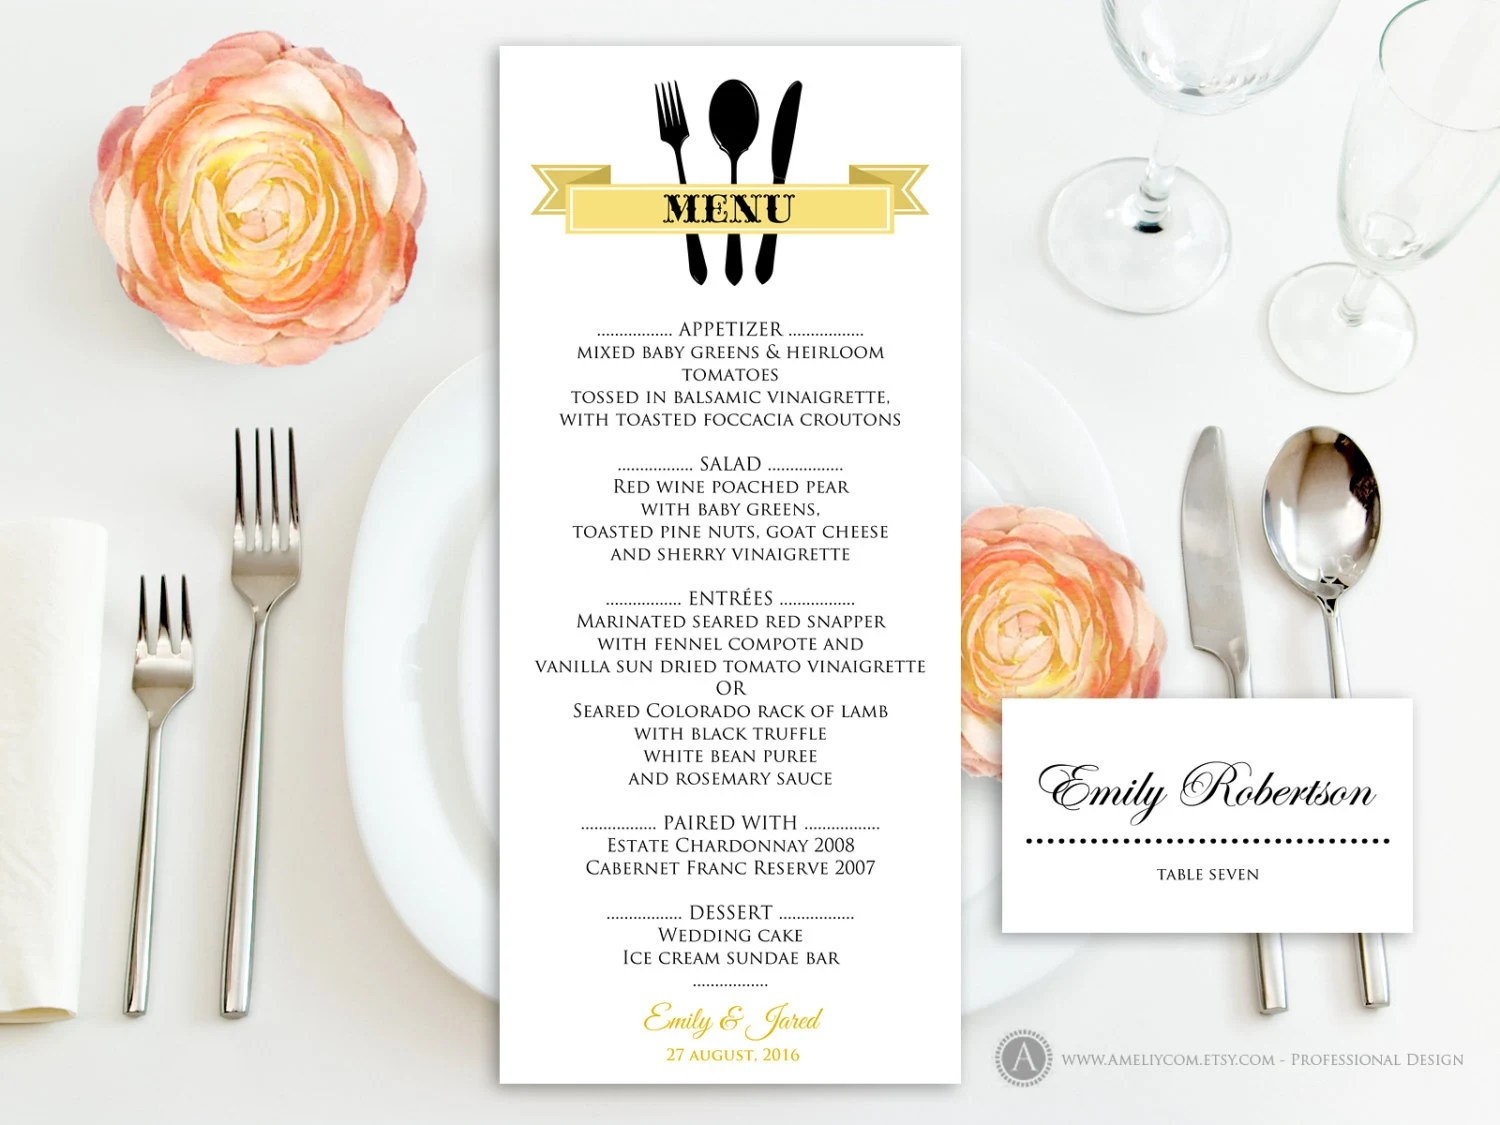 place cards template free download - Manqalhellenes - wedding place cards template free